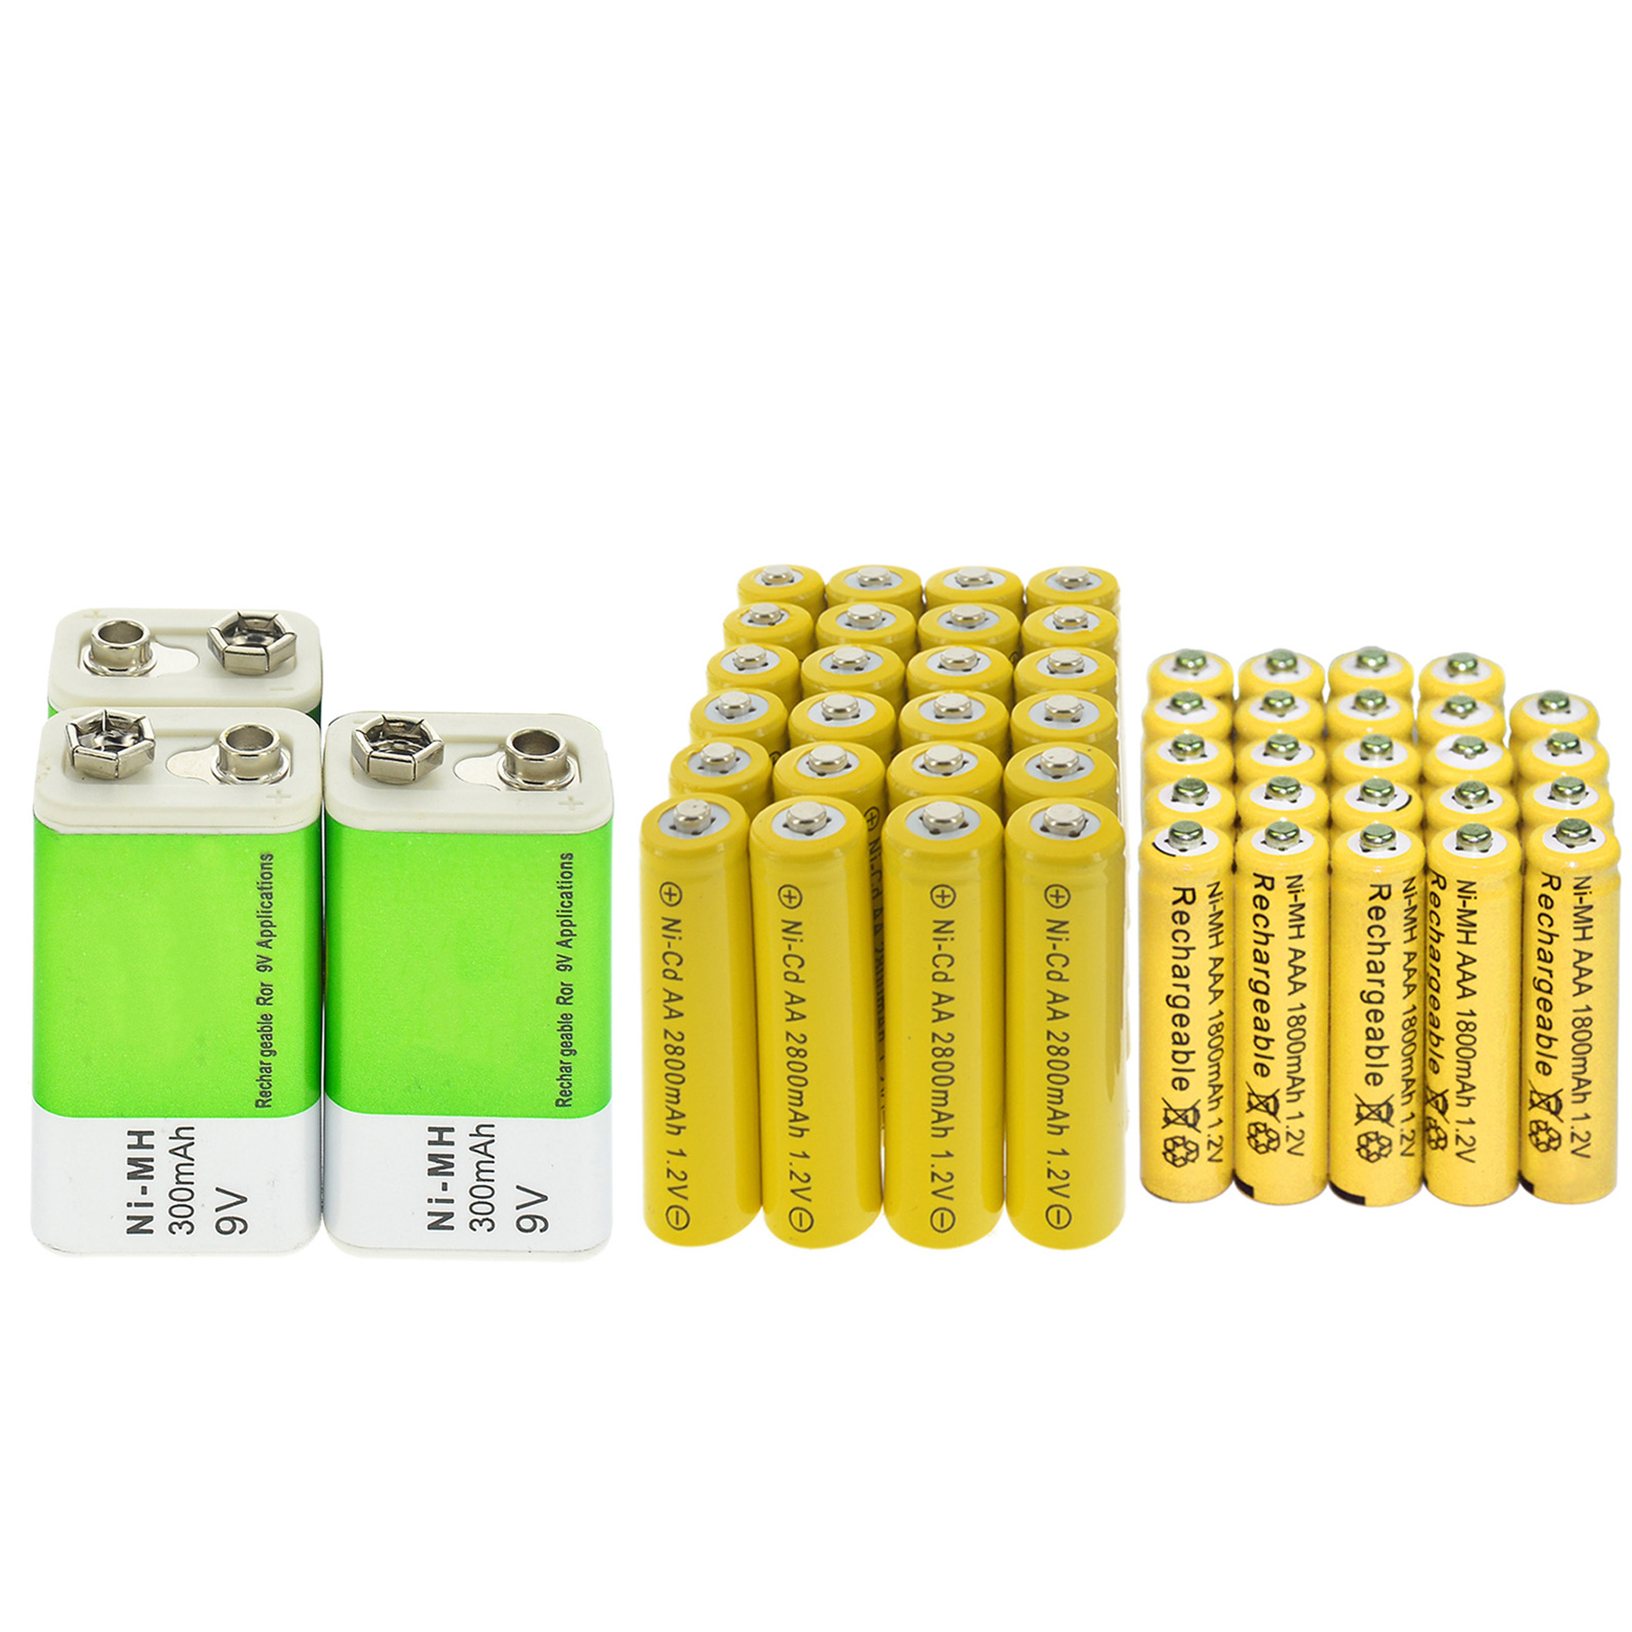 9v <font><b>300mAh</b></font>+<font><b>AA</b></font> Ni-Cd 2800mAh+AAA NI-MH 1800mAh 1.2V Rechargeable <font><b>Battery</b></font> yellow image